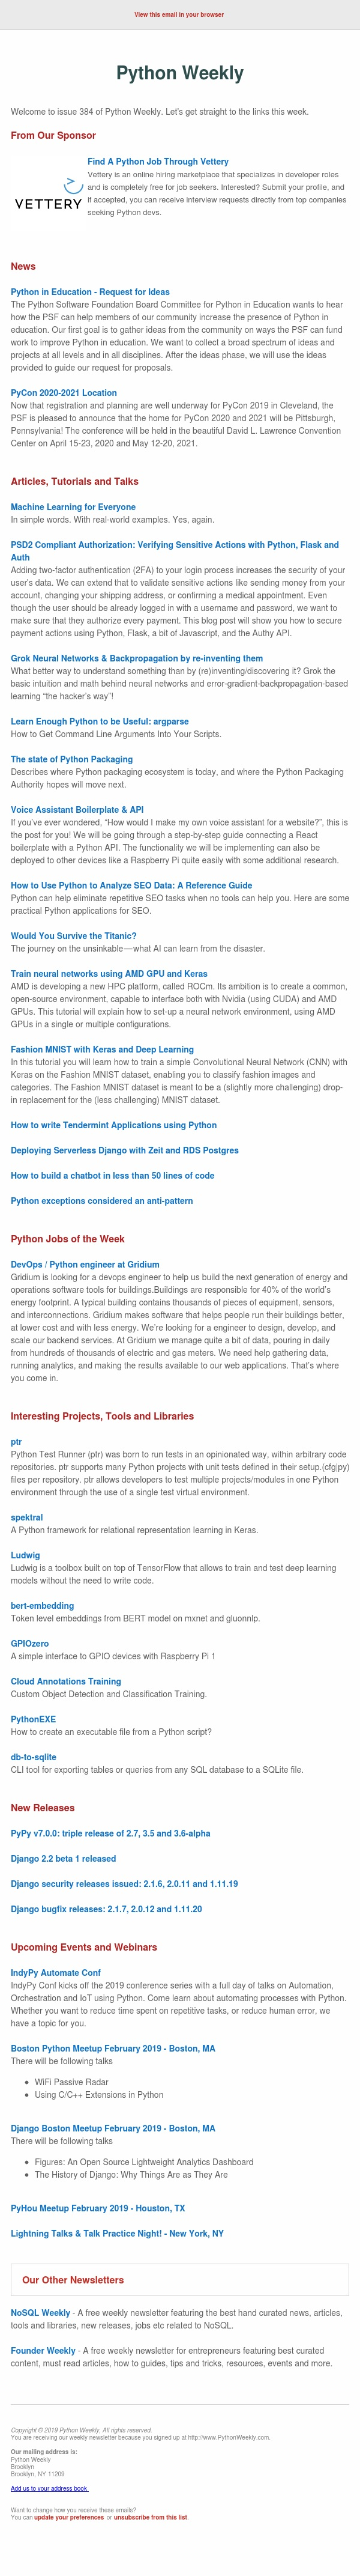 Python Weekly - Issue 384